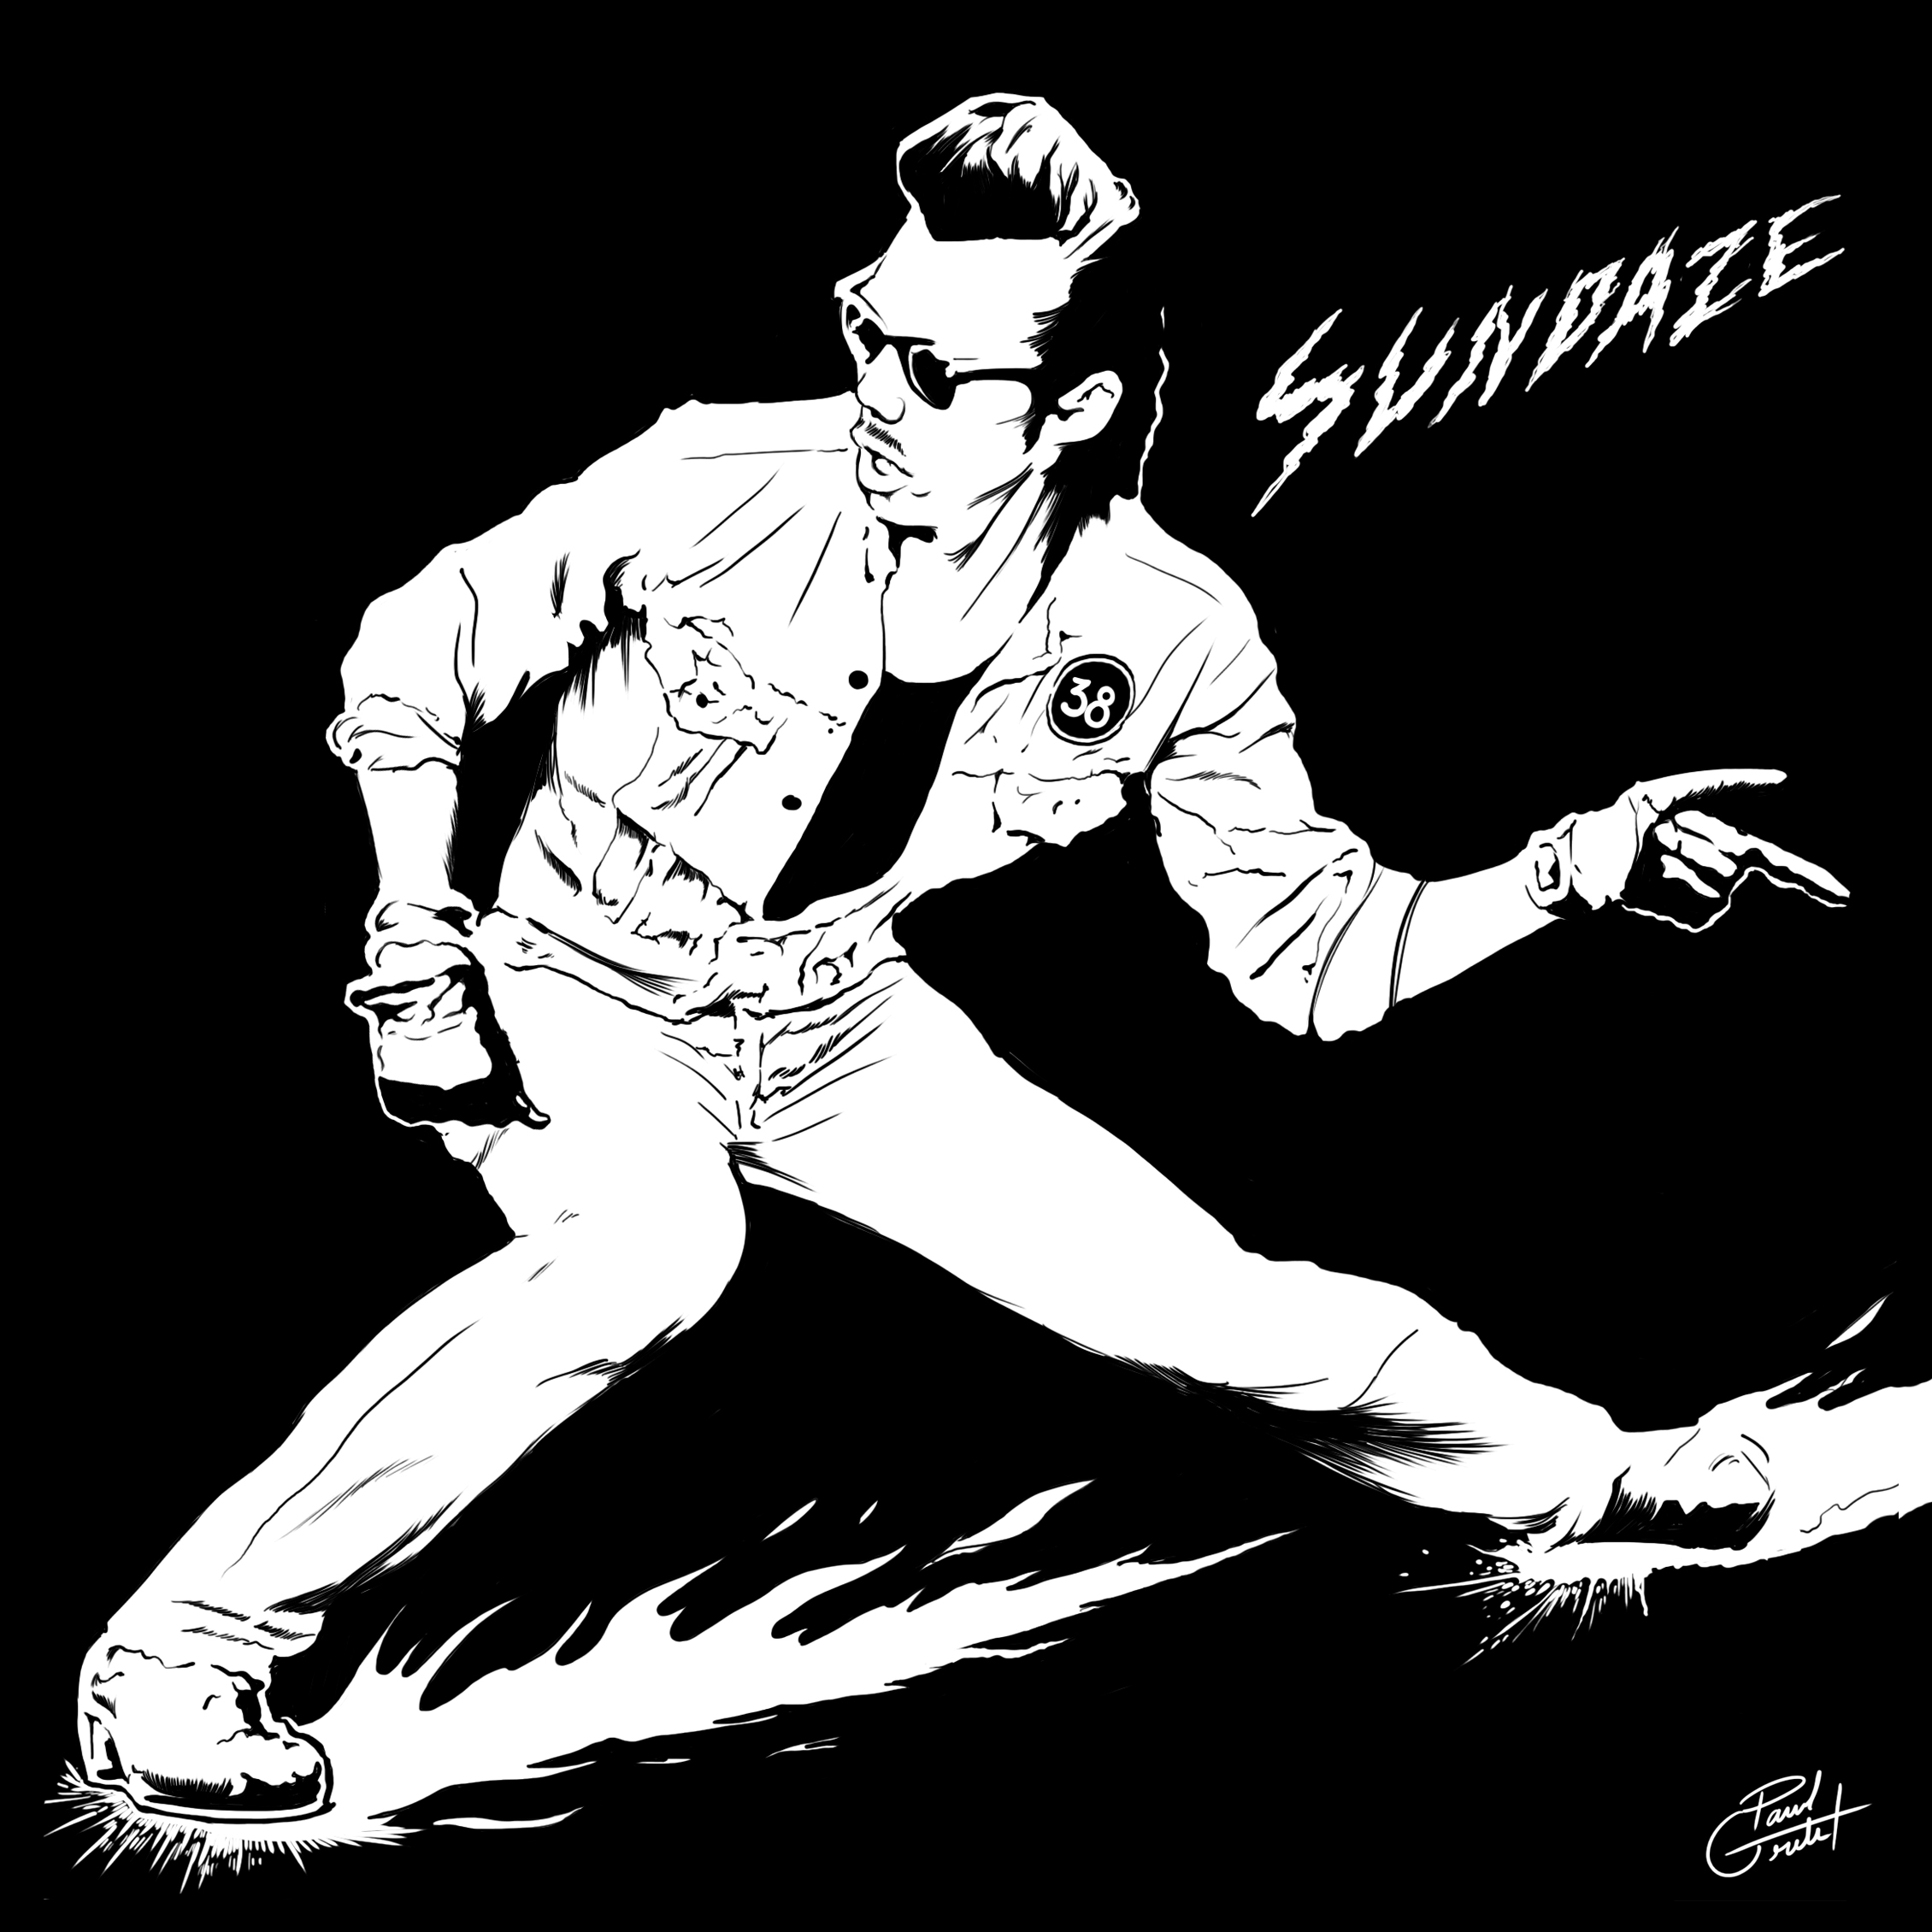 sundaze #38 - sodwee.com by Paul Grelet